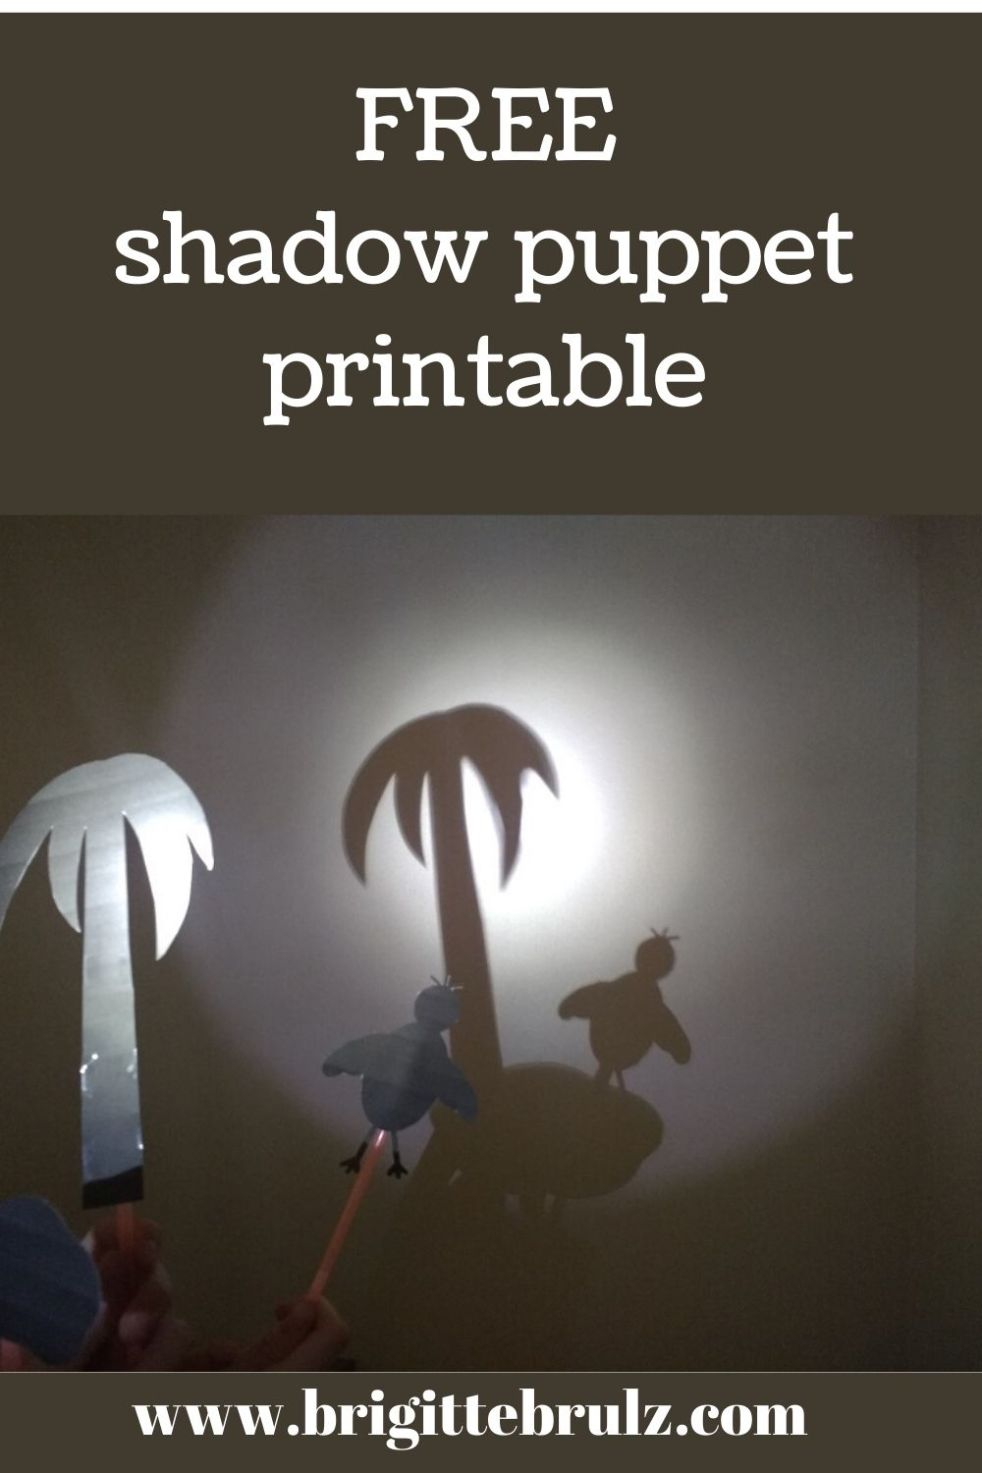 FREE shadow puppet printable